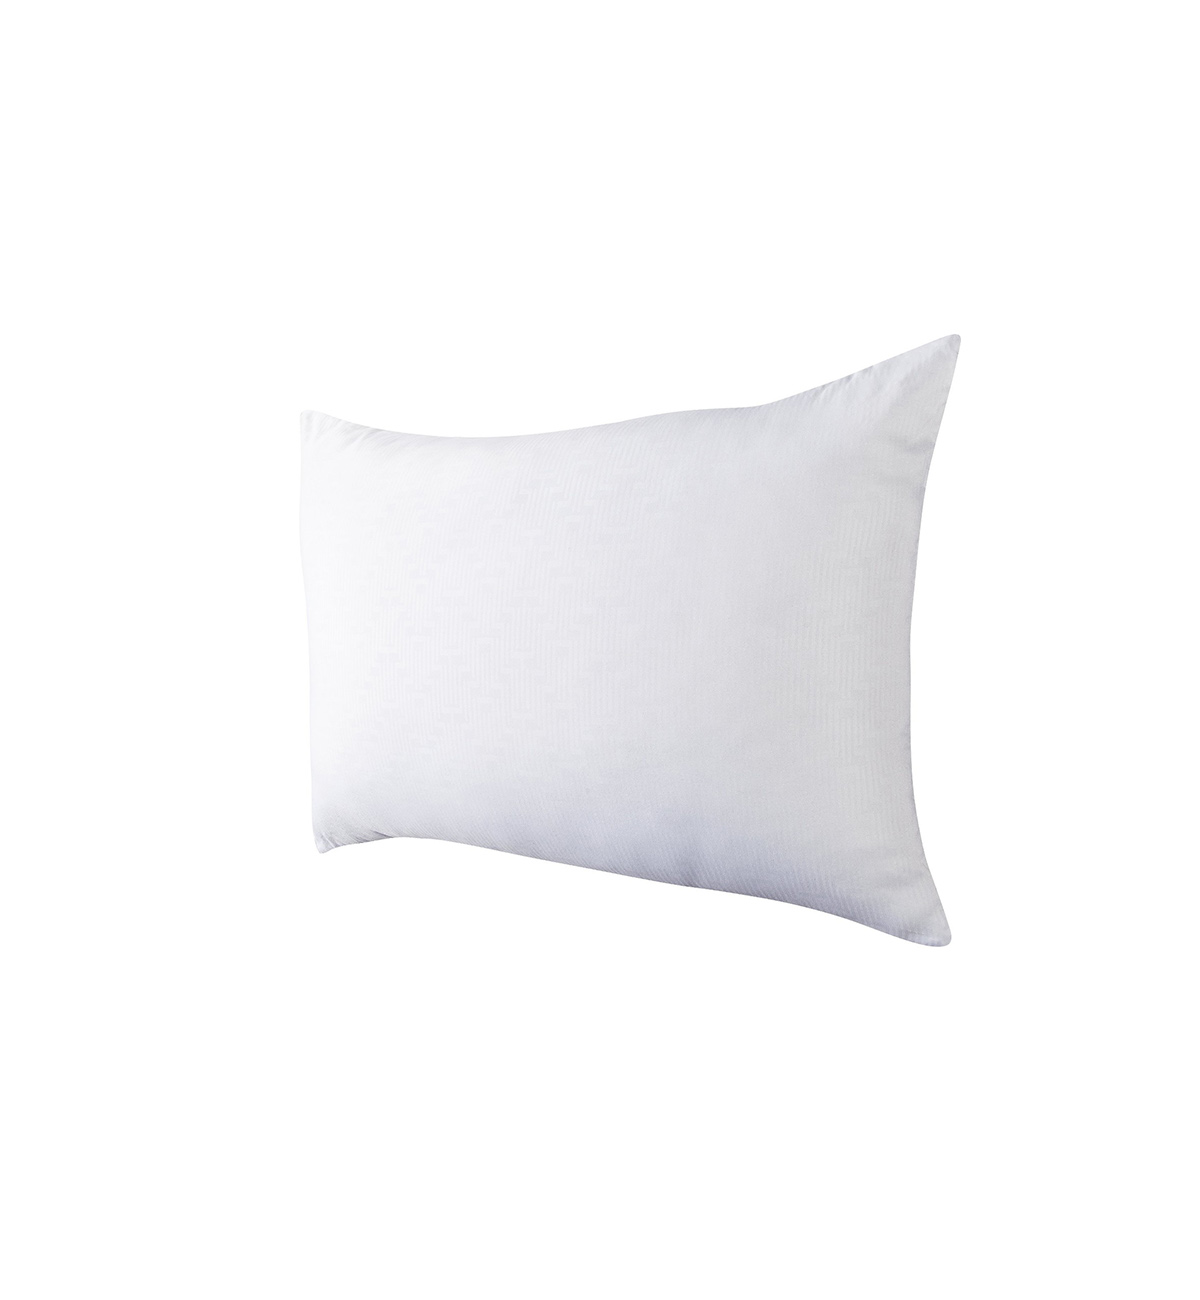 College Packing List Pillow